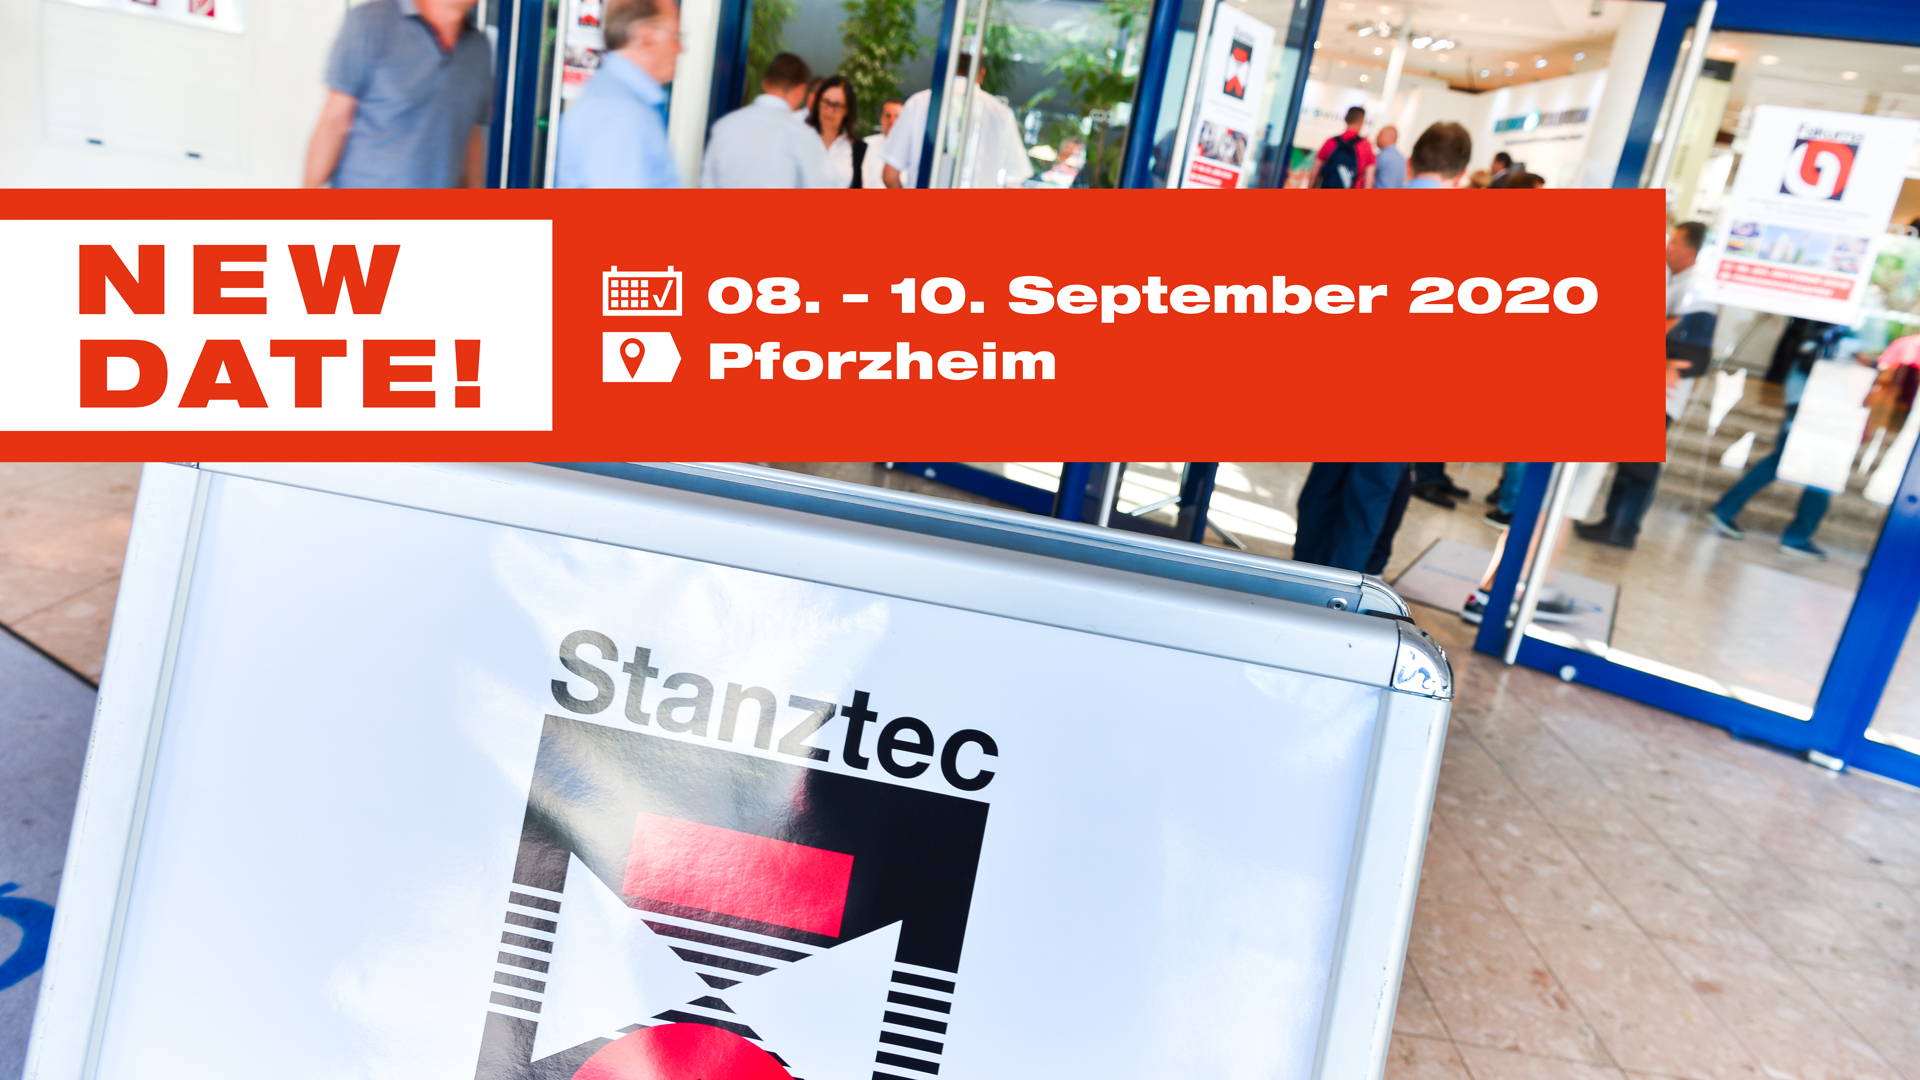 Date of the Stanztec trade fair is postponed due to current situation